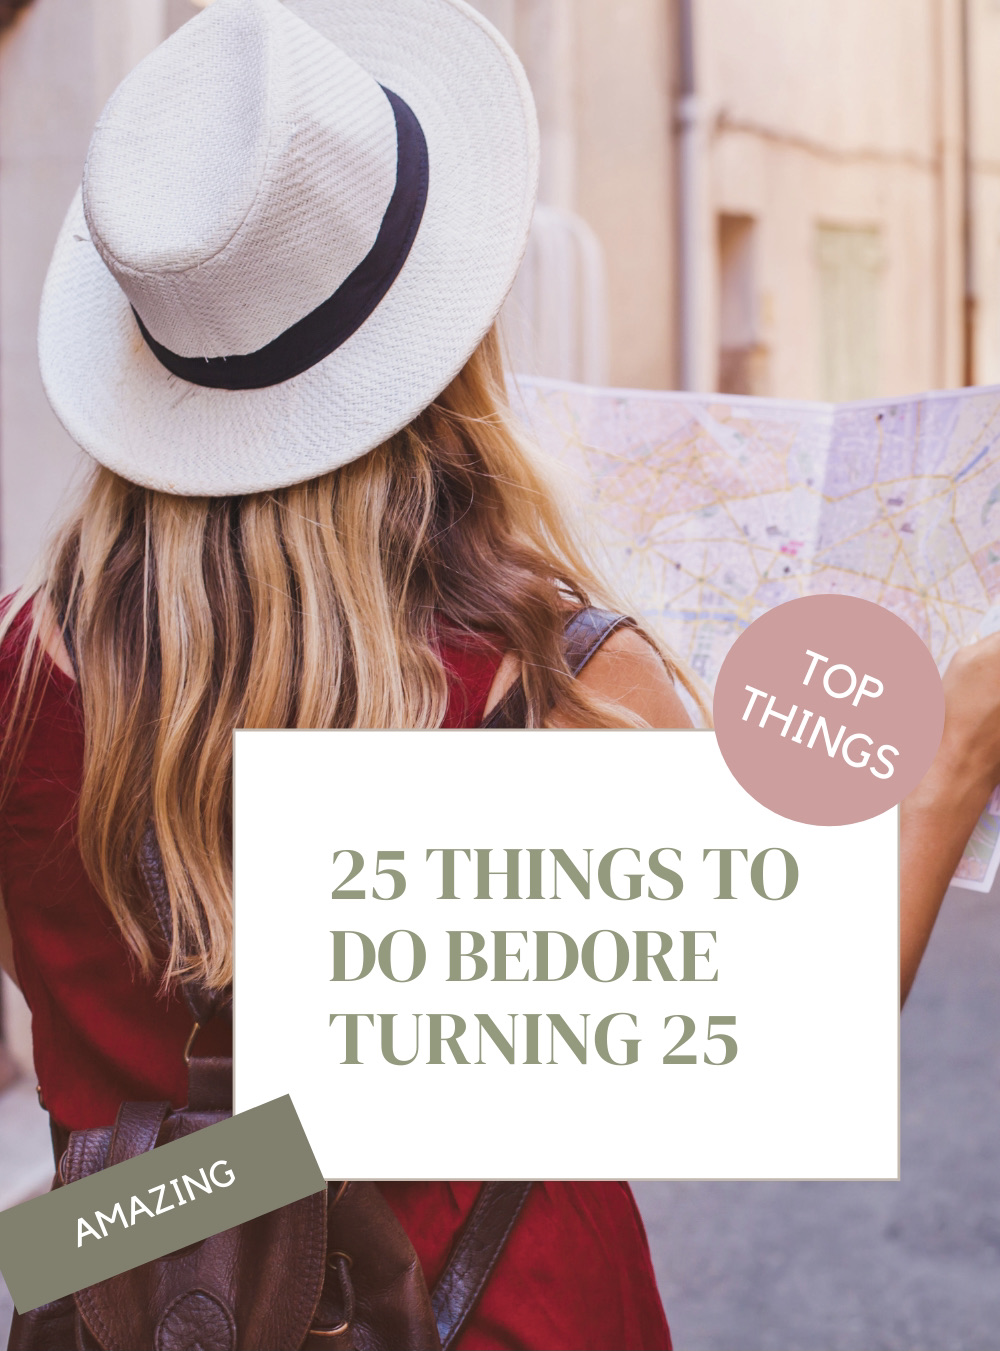 25 Things to Do Before Turning 25